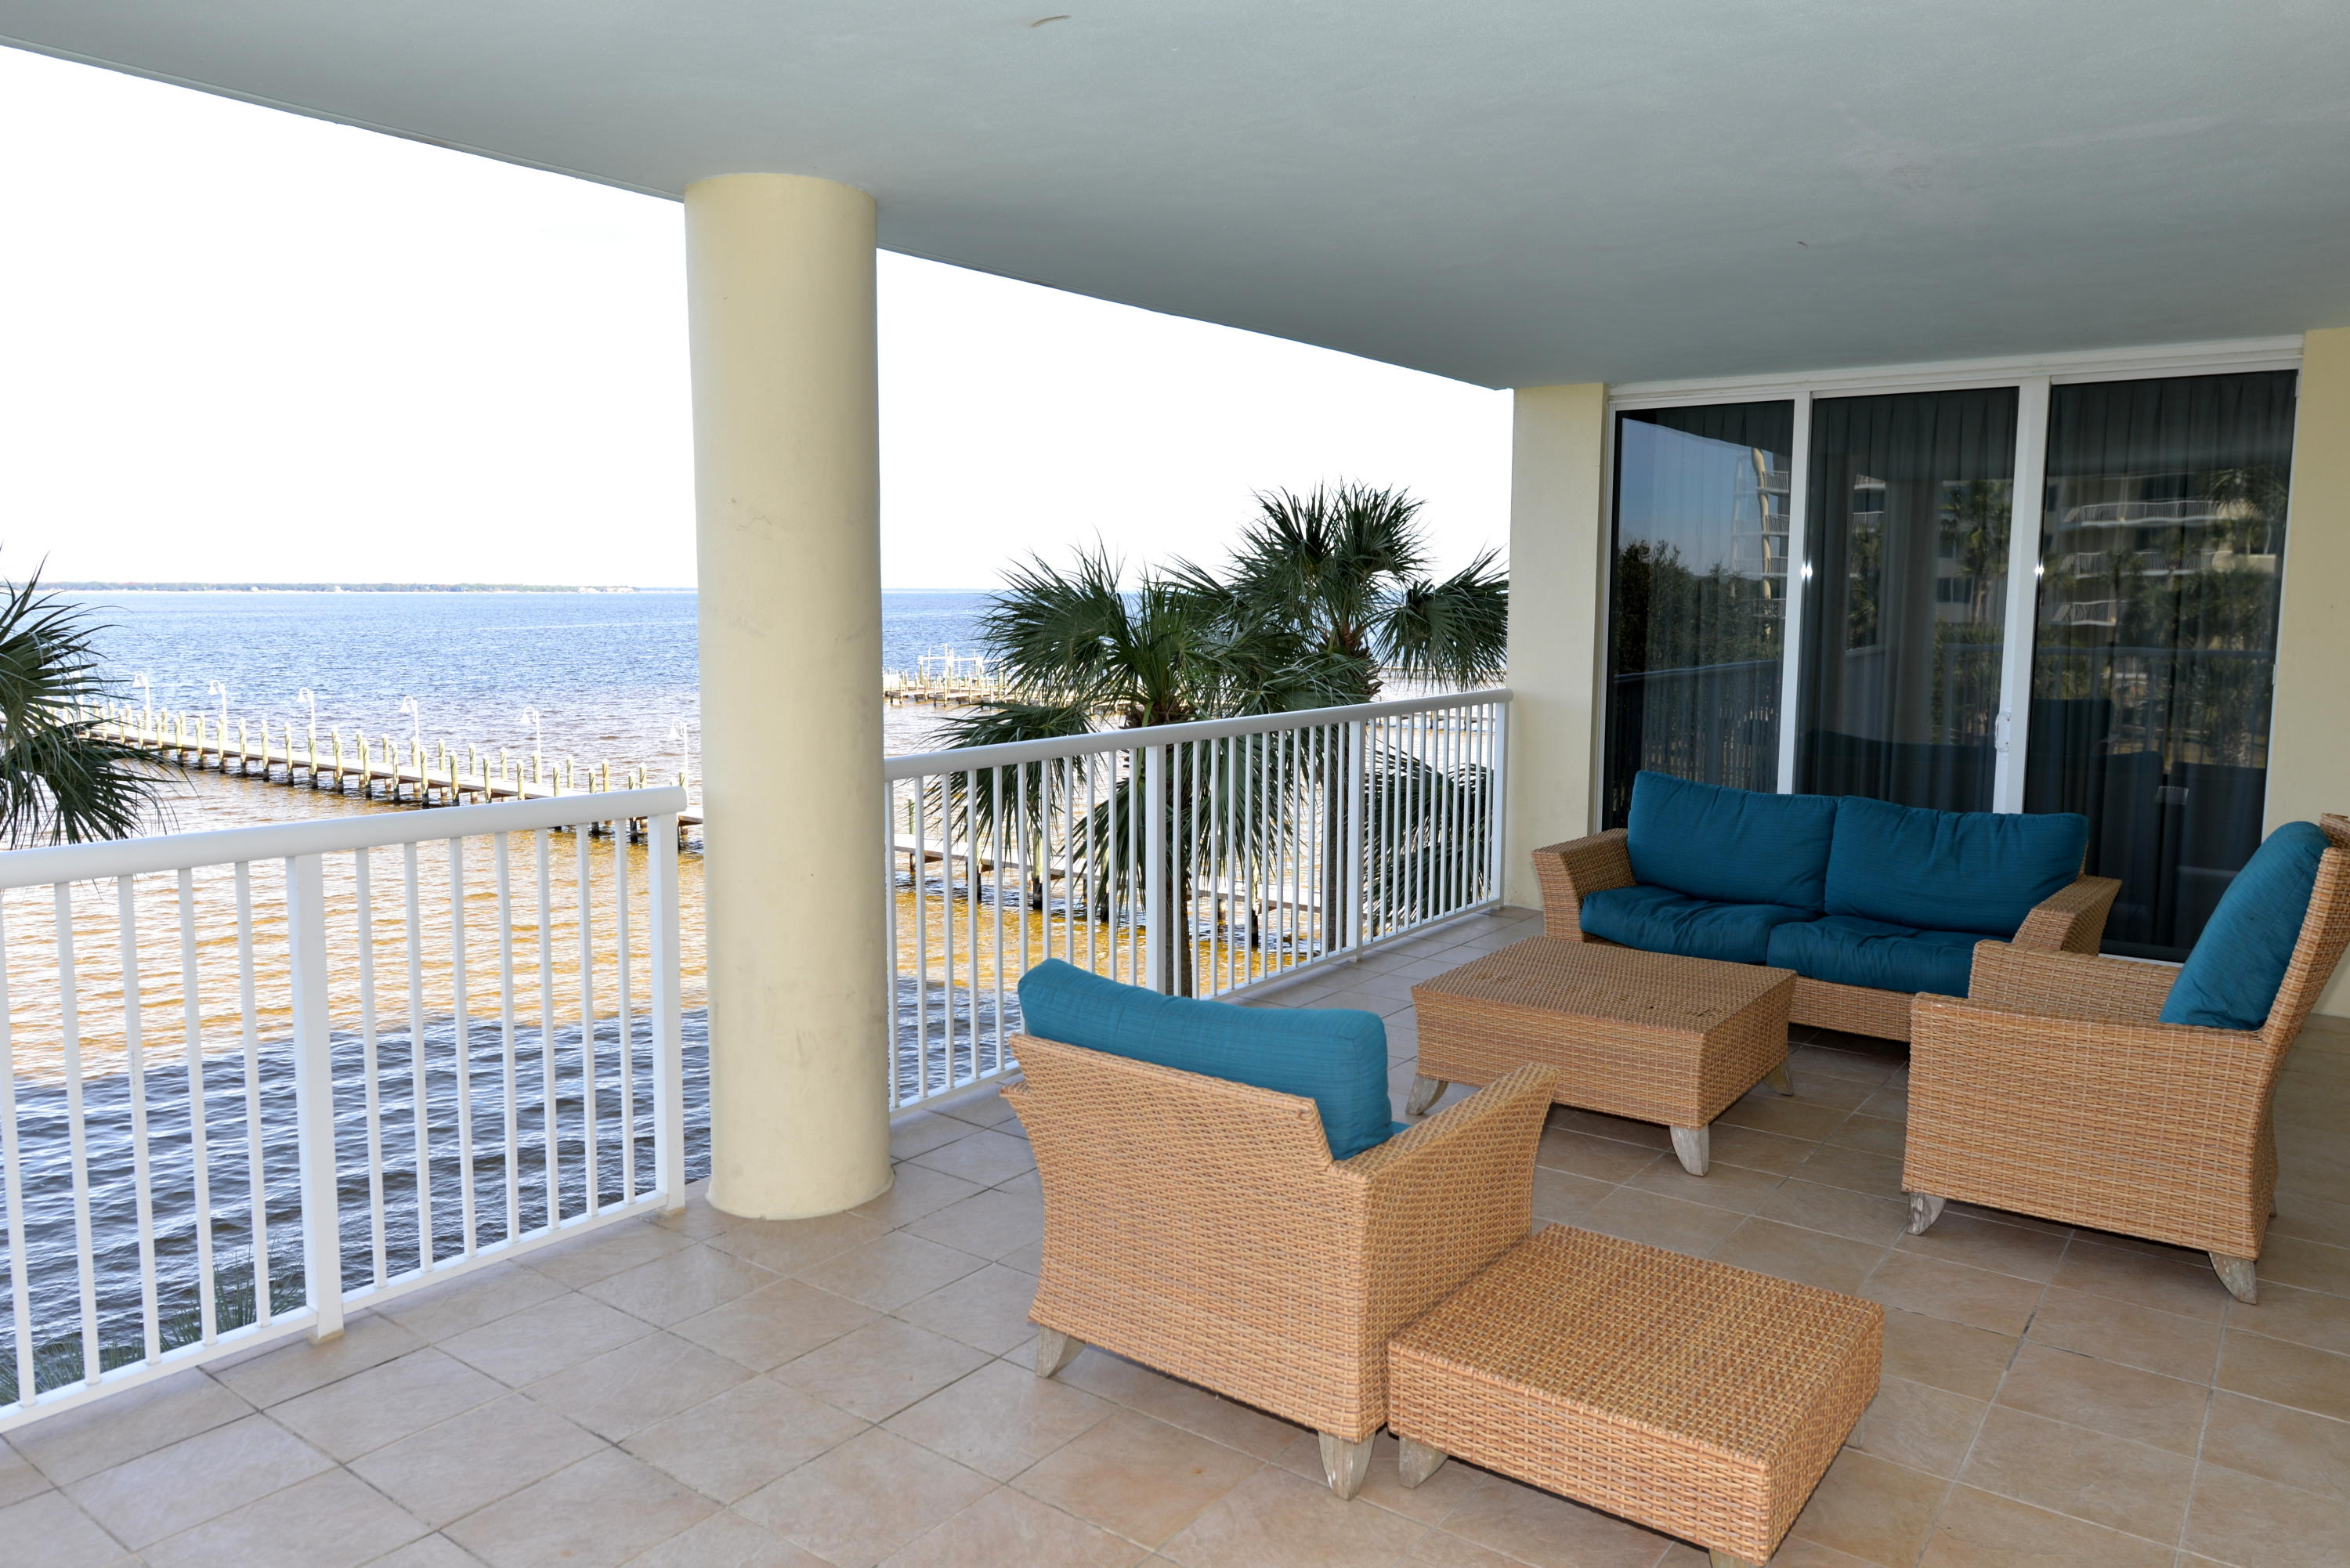 A 3 Bedroom 3 Bedroom Destin West Osprey Condominium